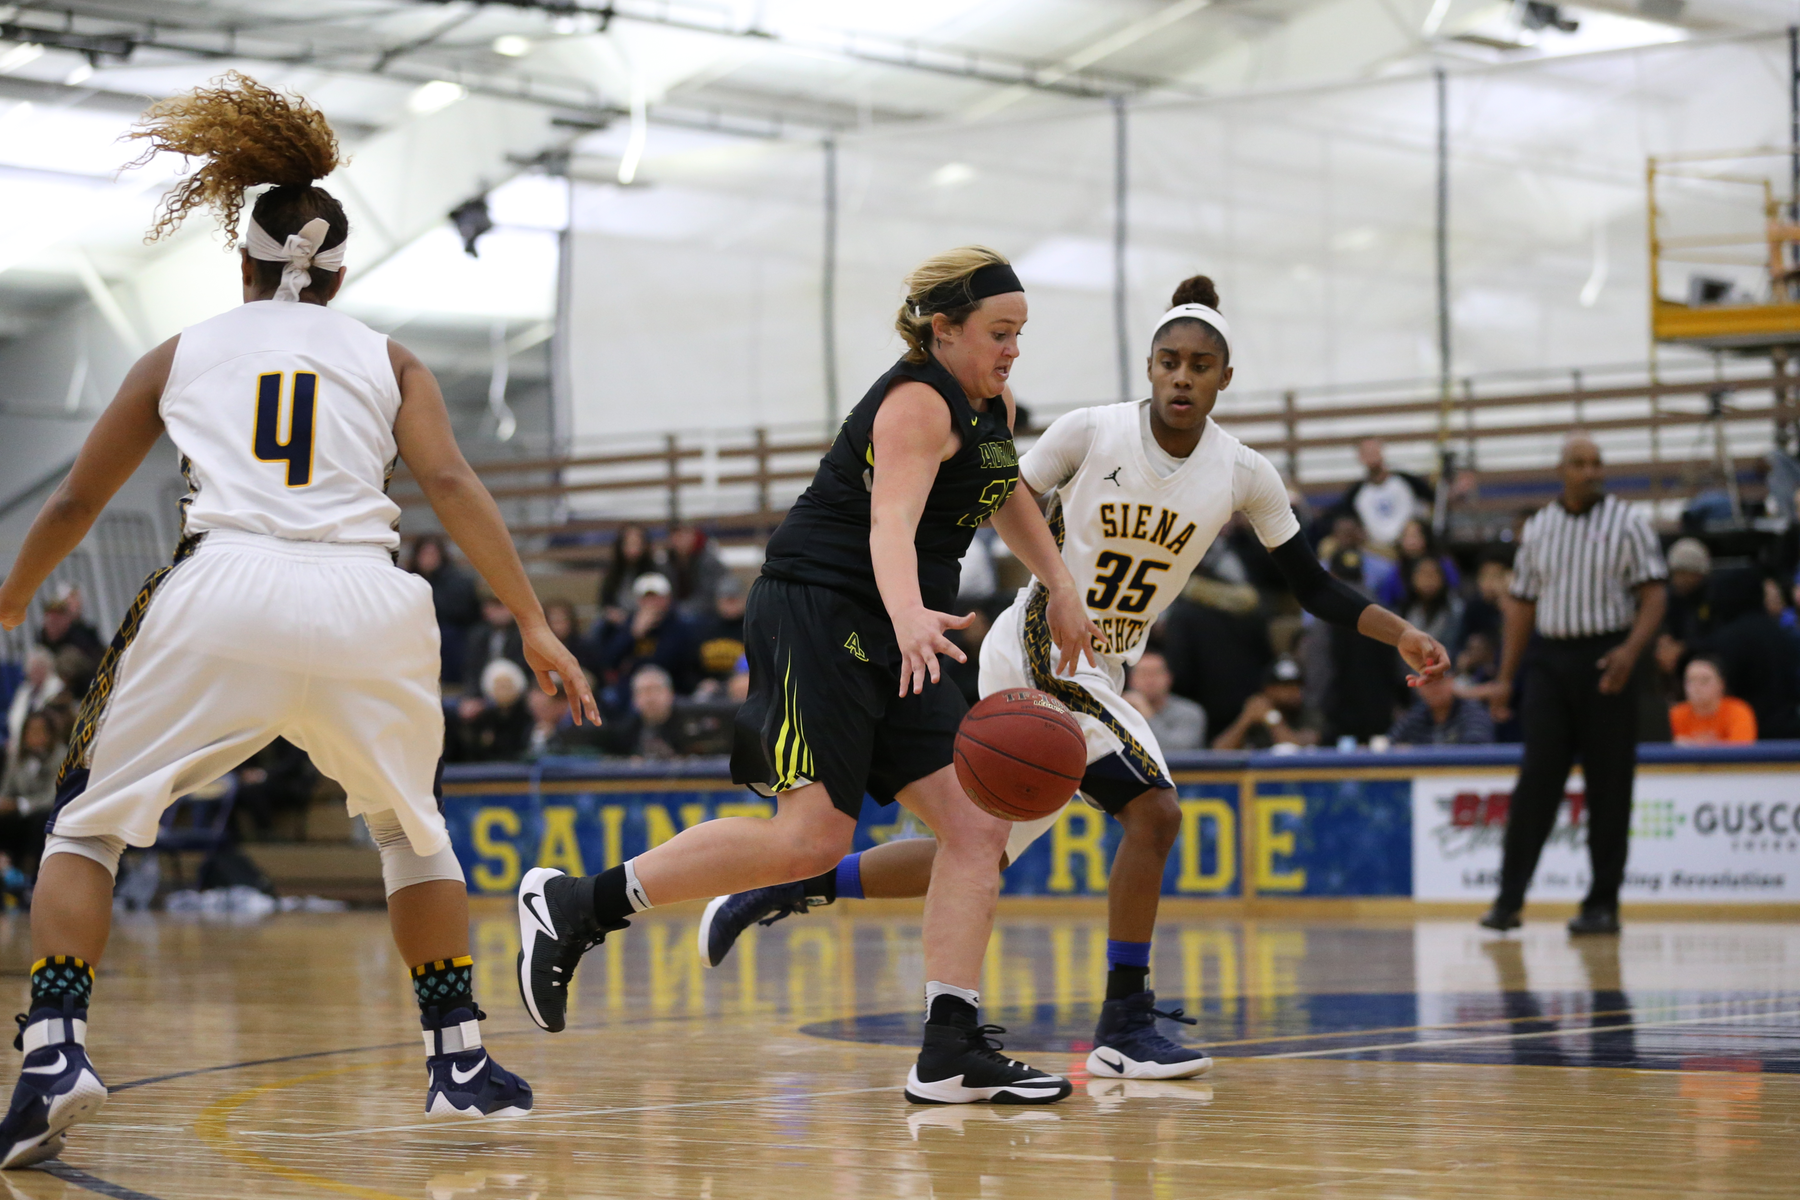 Women's Basketball Shuts Down Saint Mary's (Ind.) in Strong Defensive Effort to Win 69-46